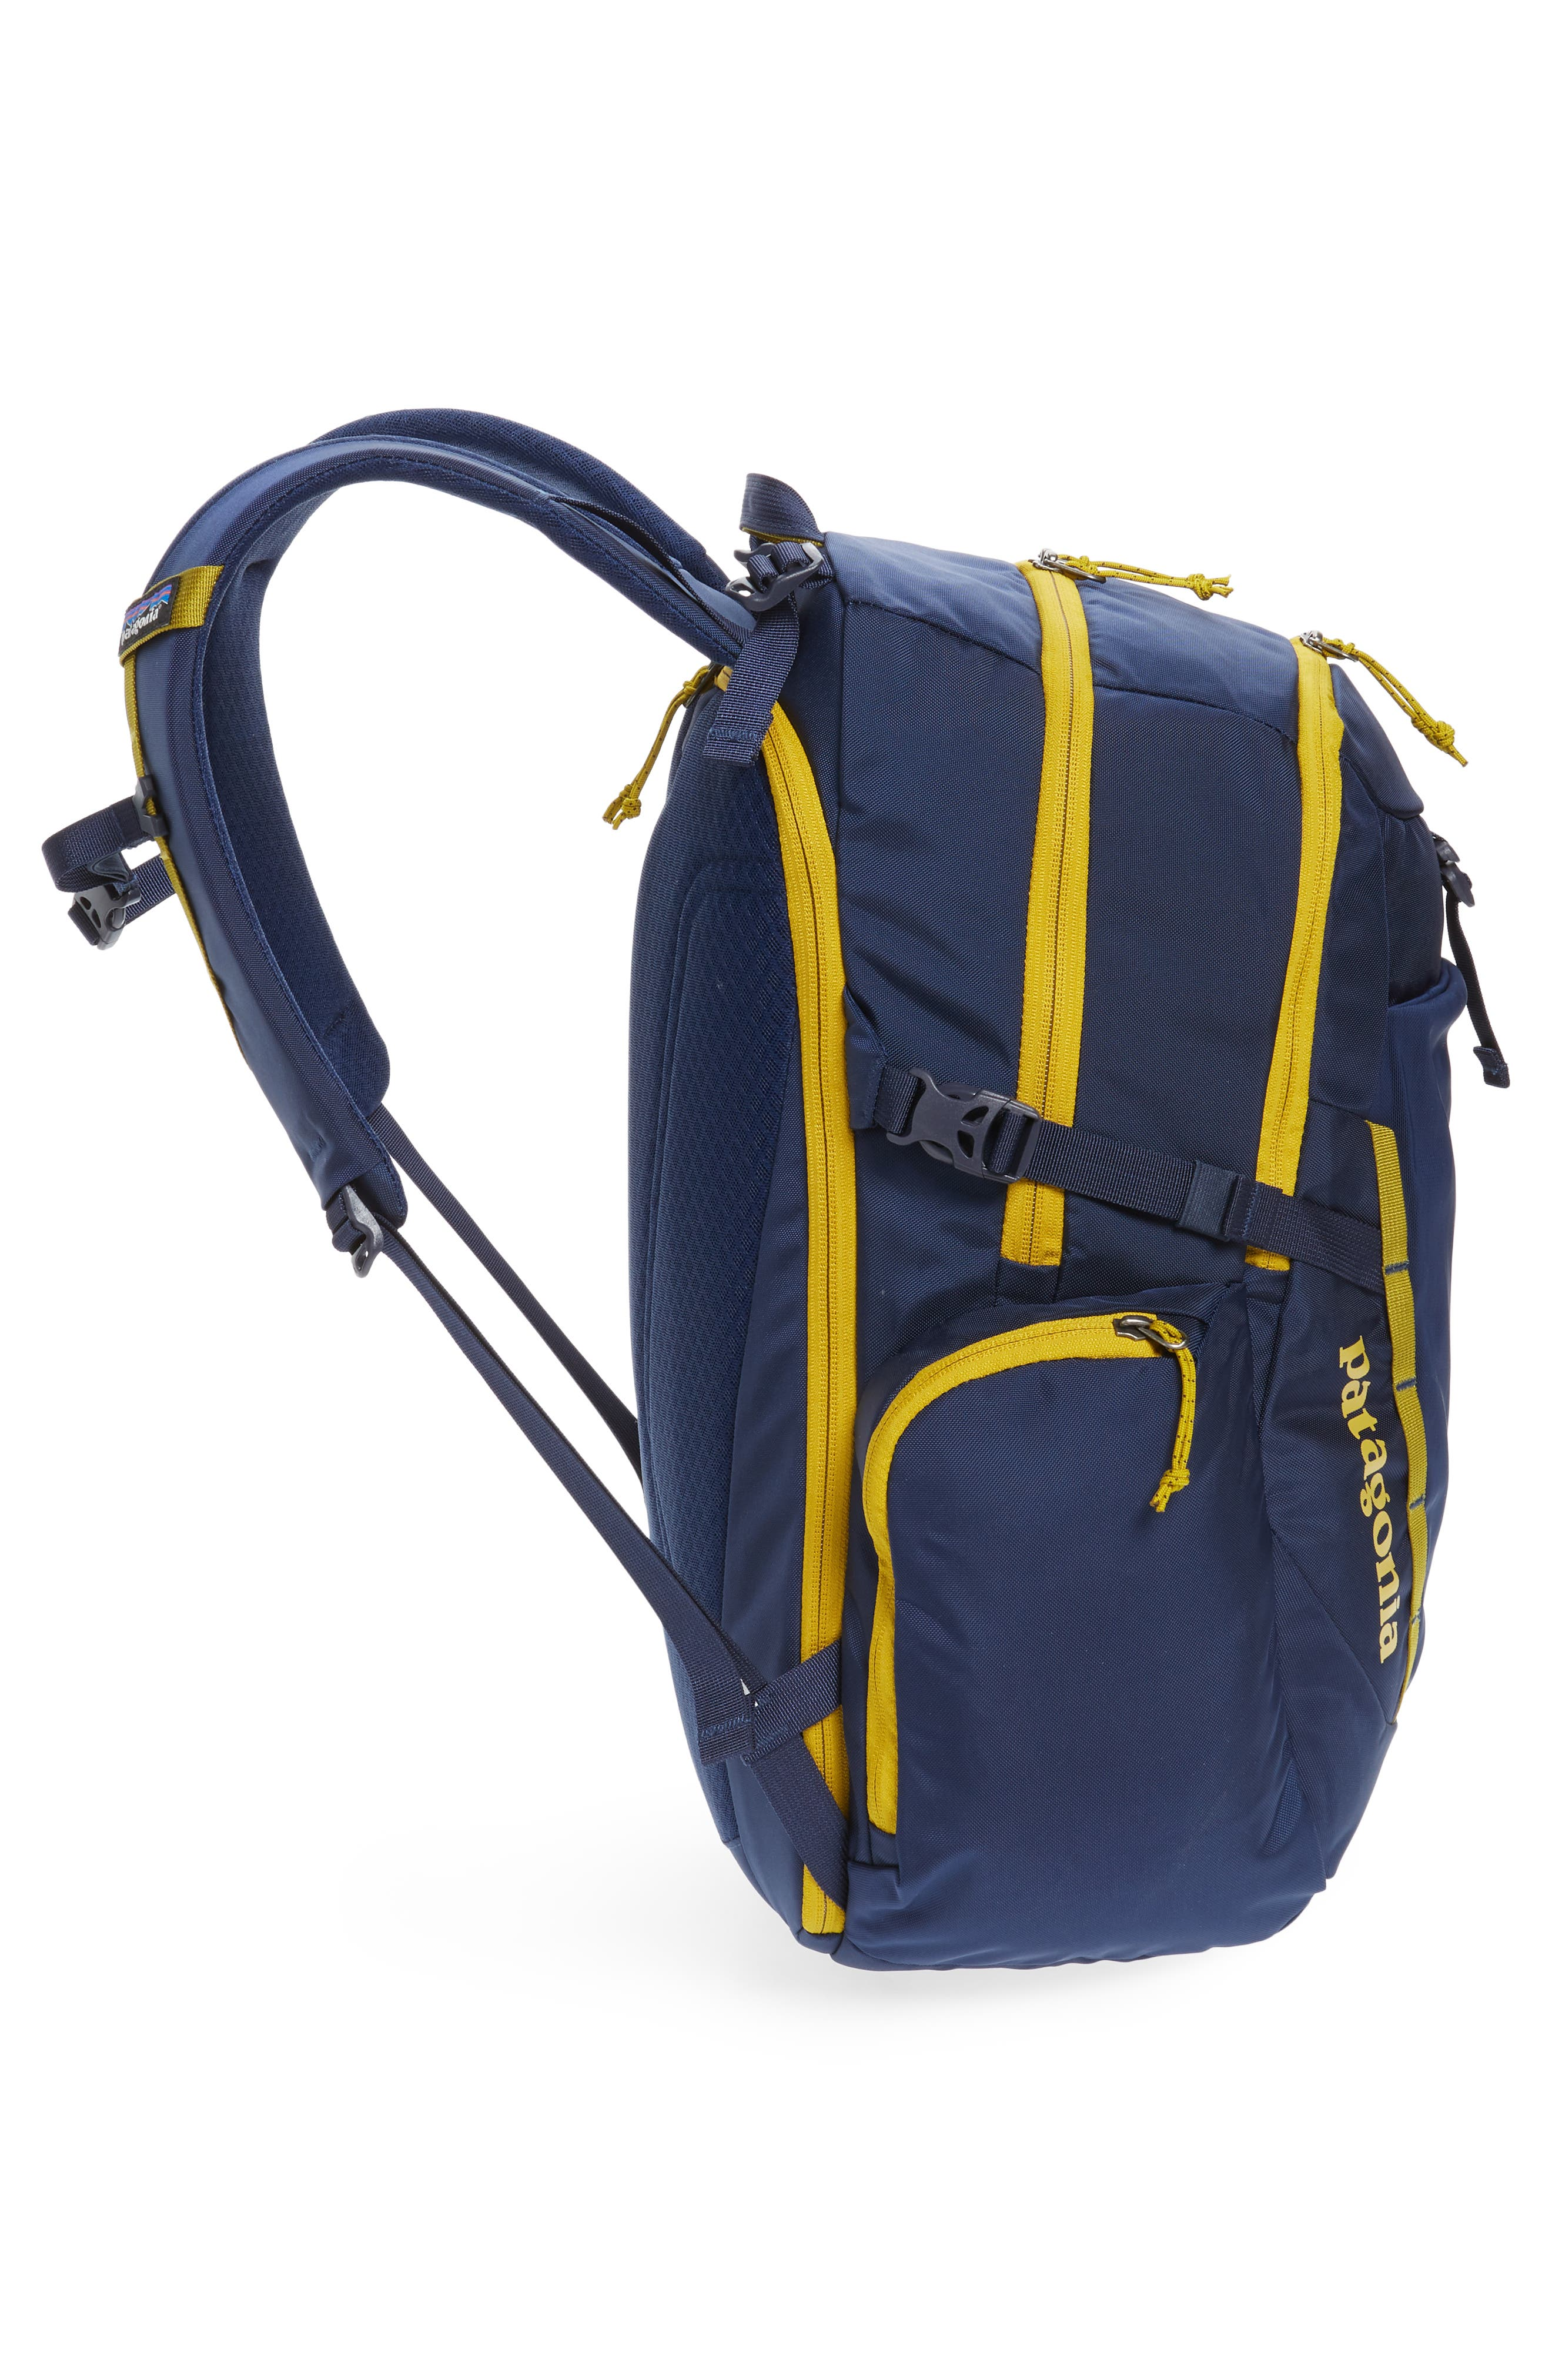 Paxat 32-Liter Backpack,                             Alternate thumbnail 5, color,                             CLASSIC NAVY